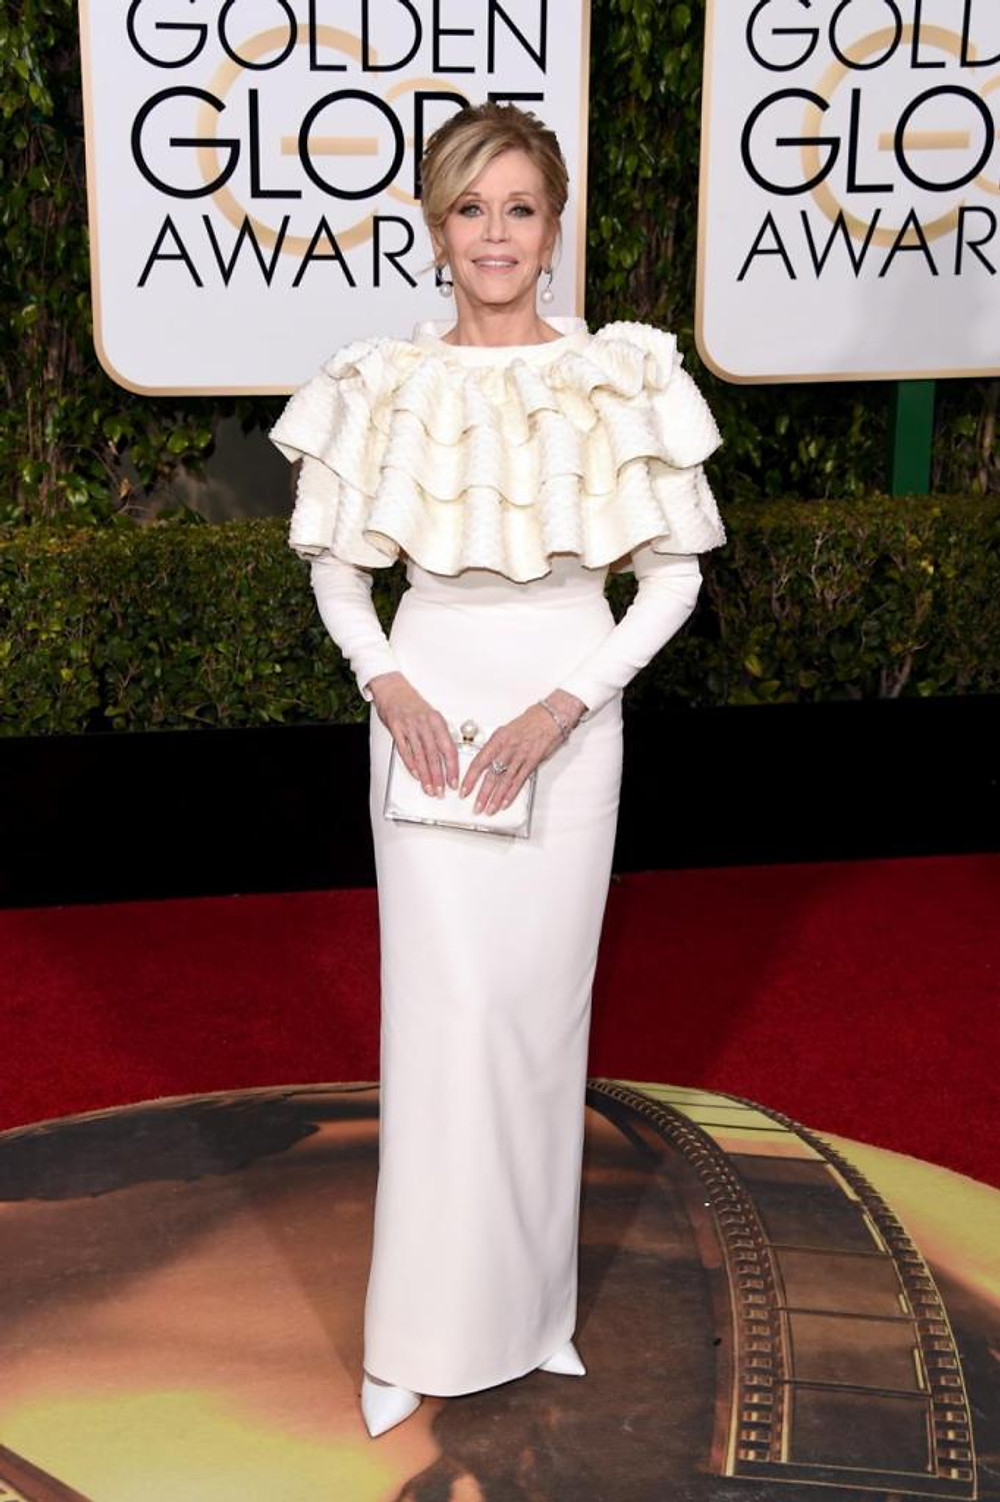 Actress Jane Fonda struck a pose in a striking Yves Saint Laurent Couture by Hedi Slimane gown at the 73rd Annual Golden Globe Awards on Jan. 10, 2016.